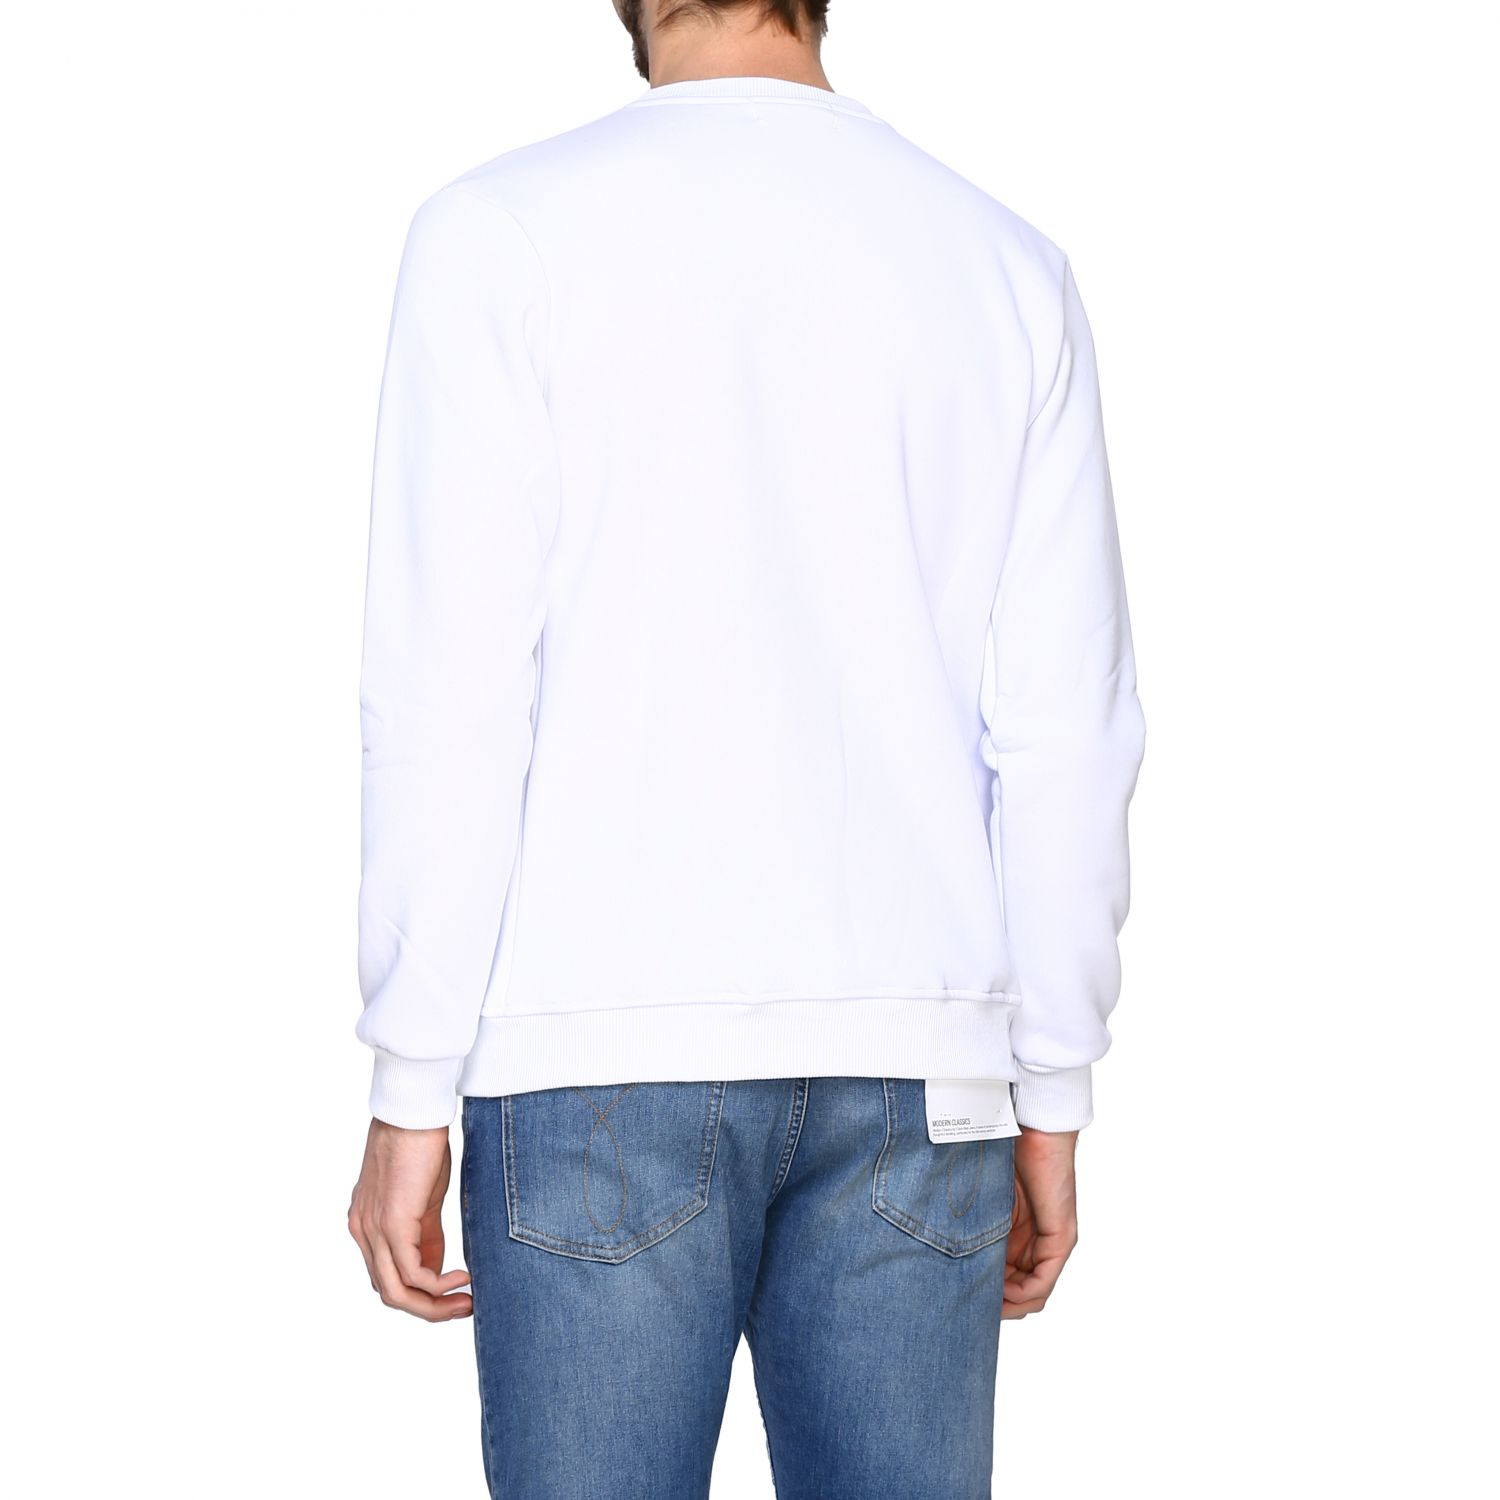 Sweatshirt 1921: Sweatshirt men 1921 white 3